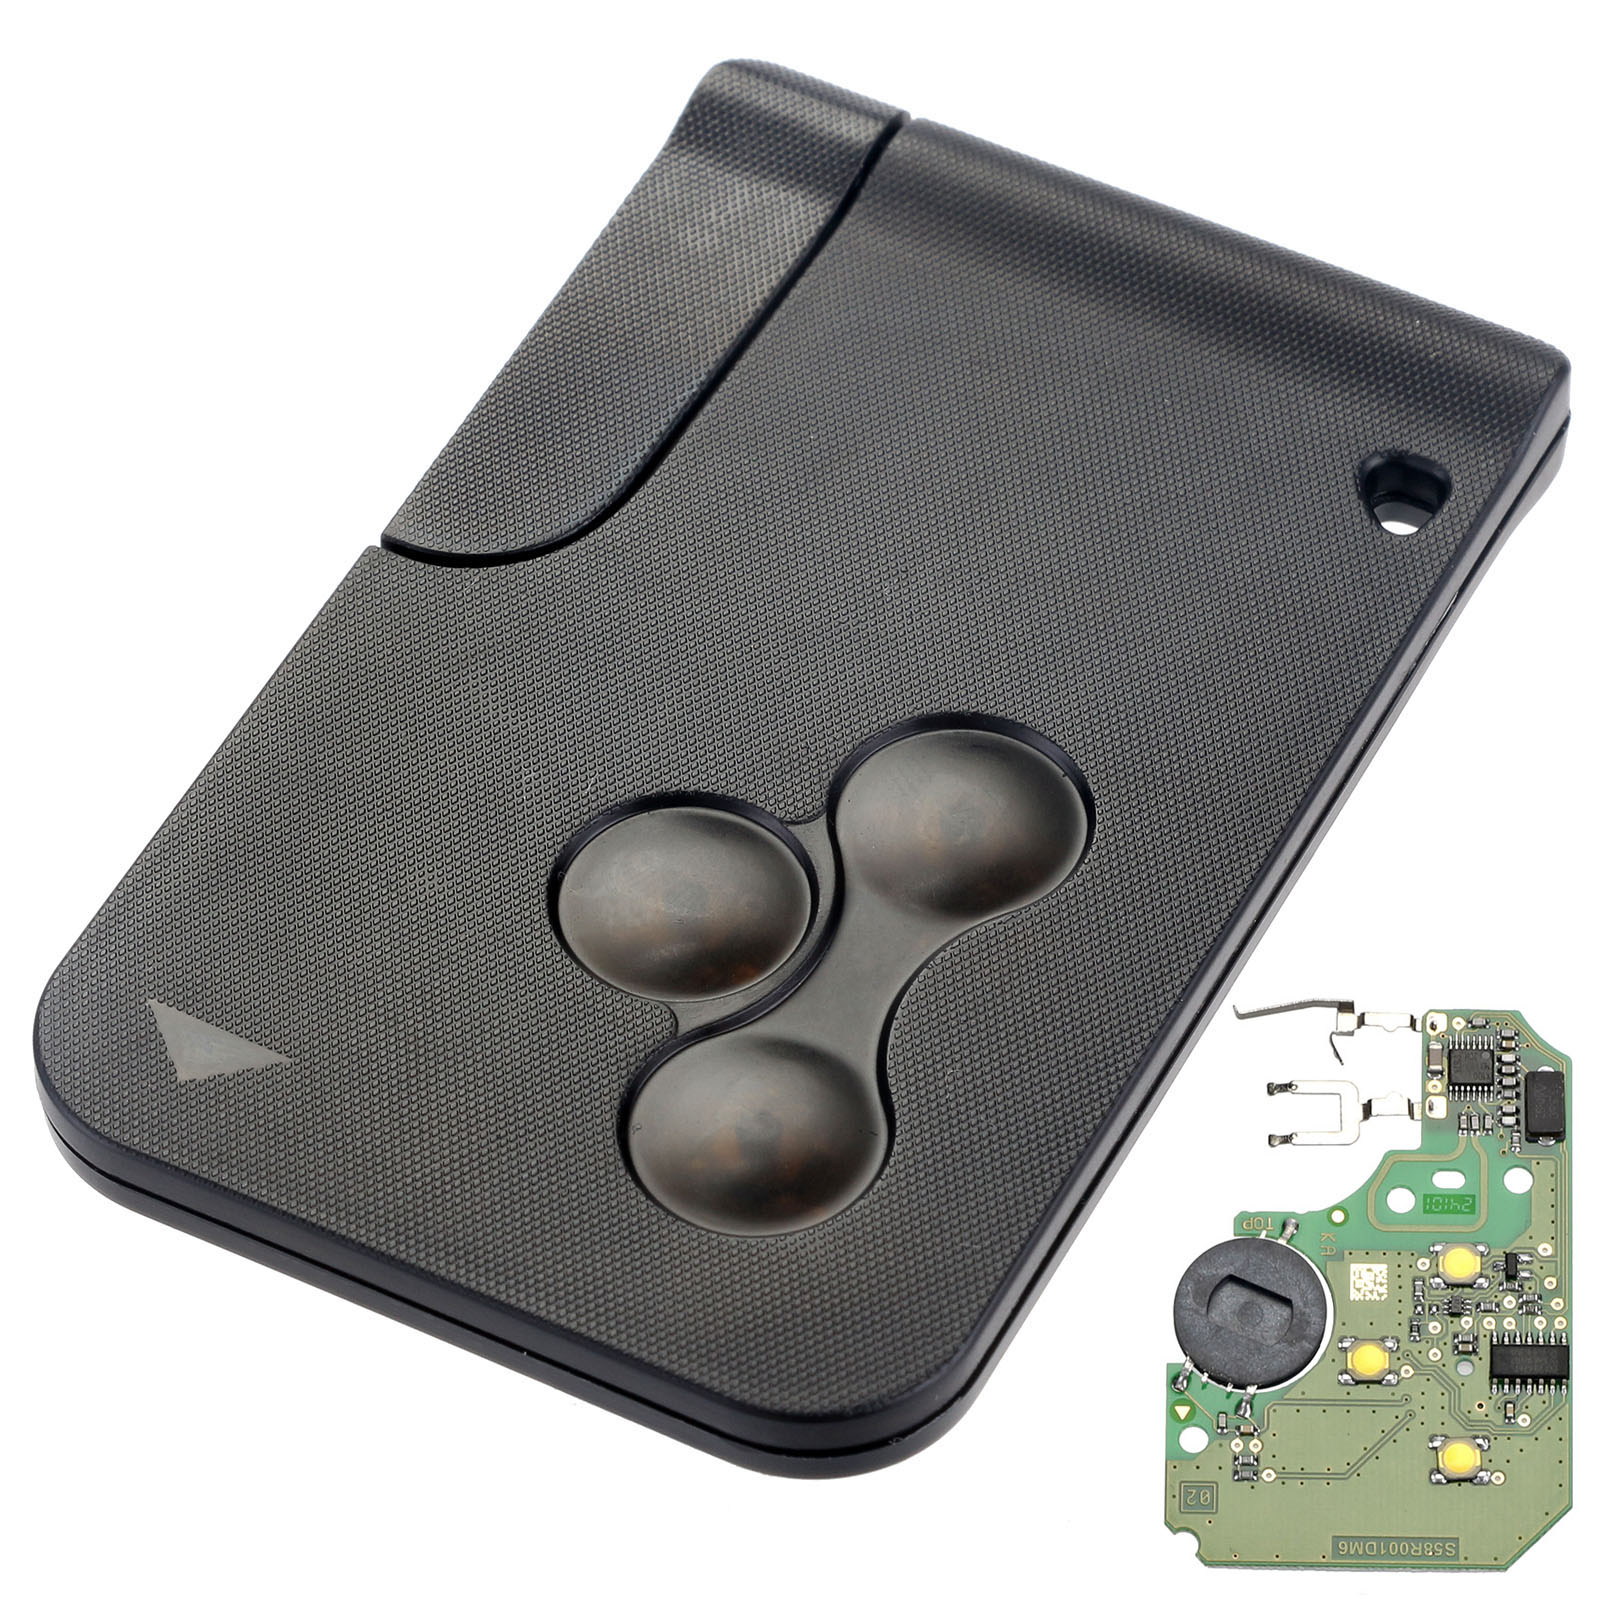 3 Buttons 433MHZ Smart <font><b>Key</b></font> Fob Shell Case Card For Renault Megane With PCF7947 Chip 1pc Remote Car <font><b>Key</b></font> Free Shipping D25